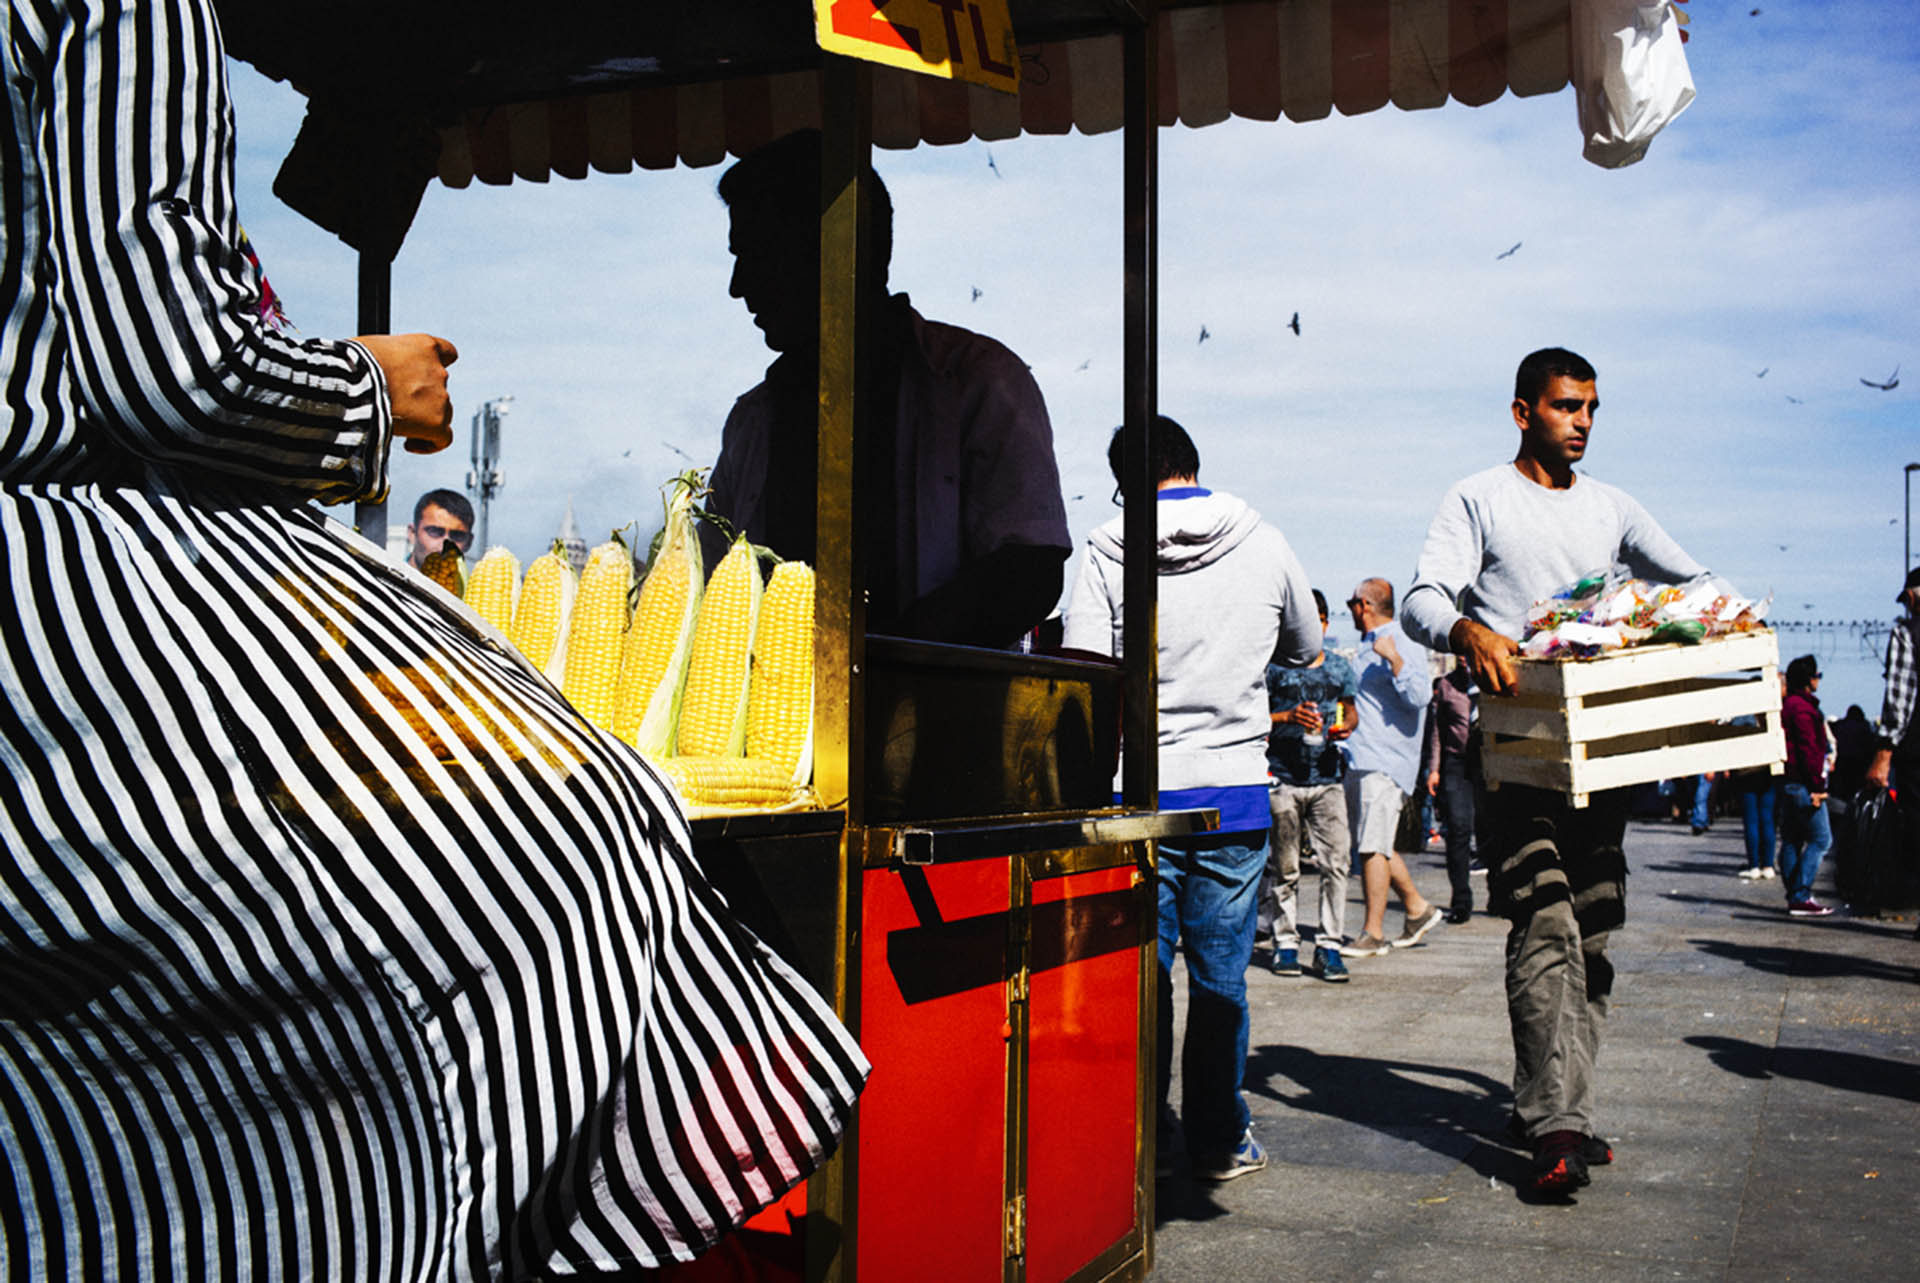 silhouette istanbul street photography in color by pierre belhassen